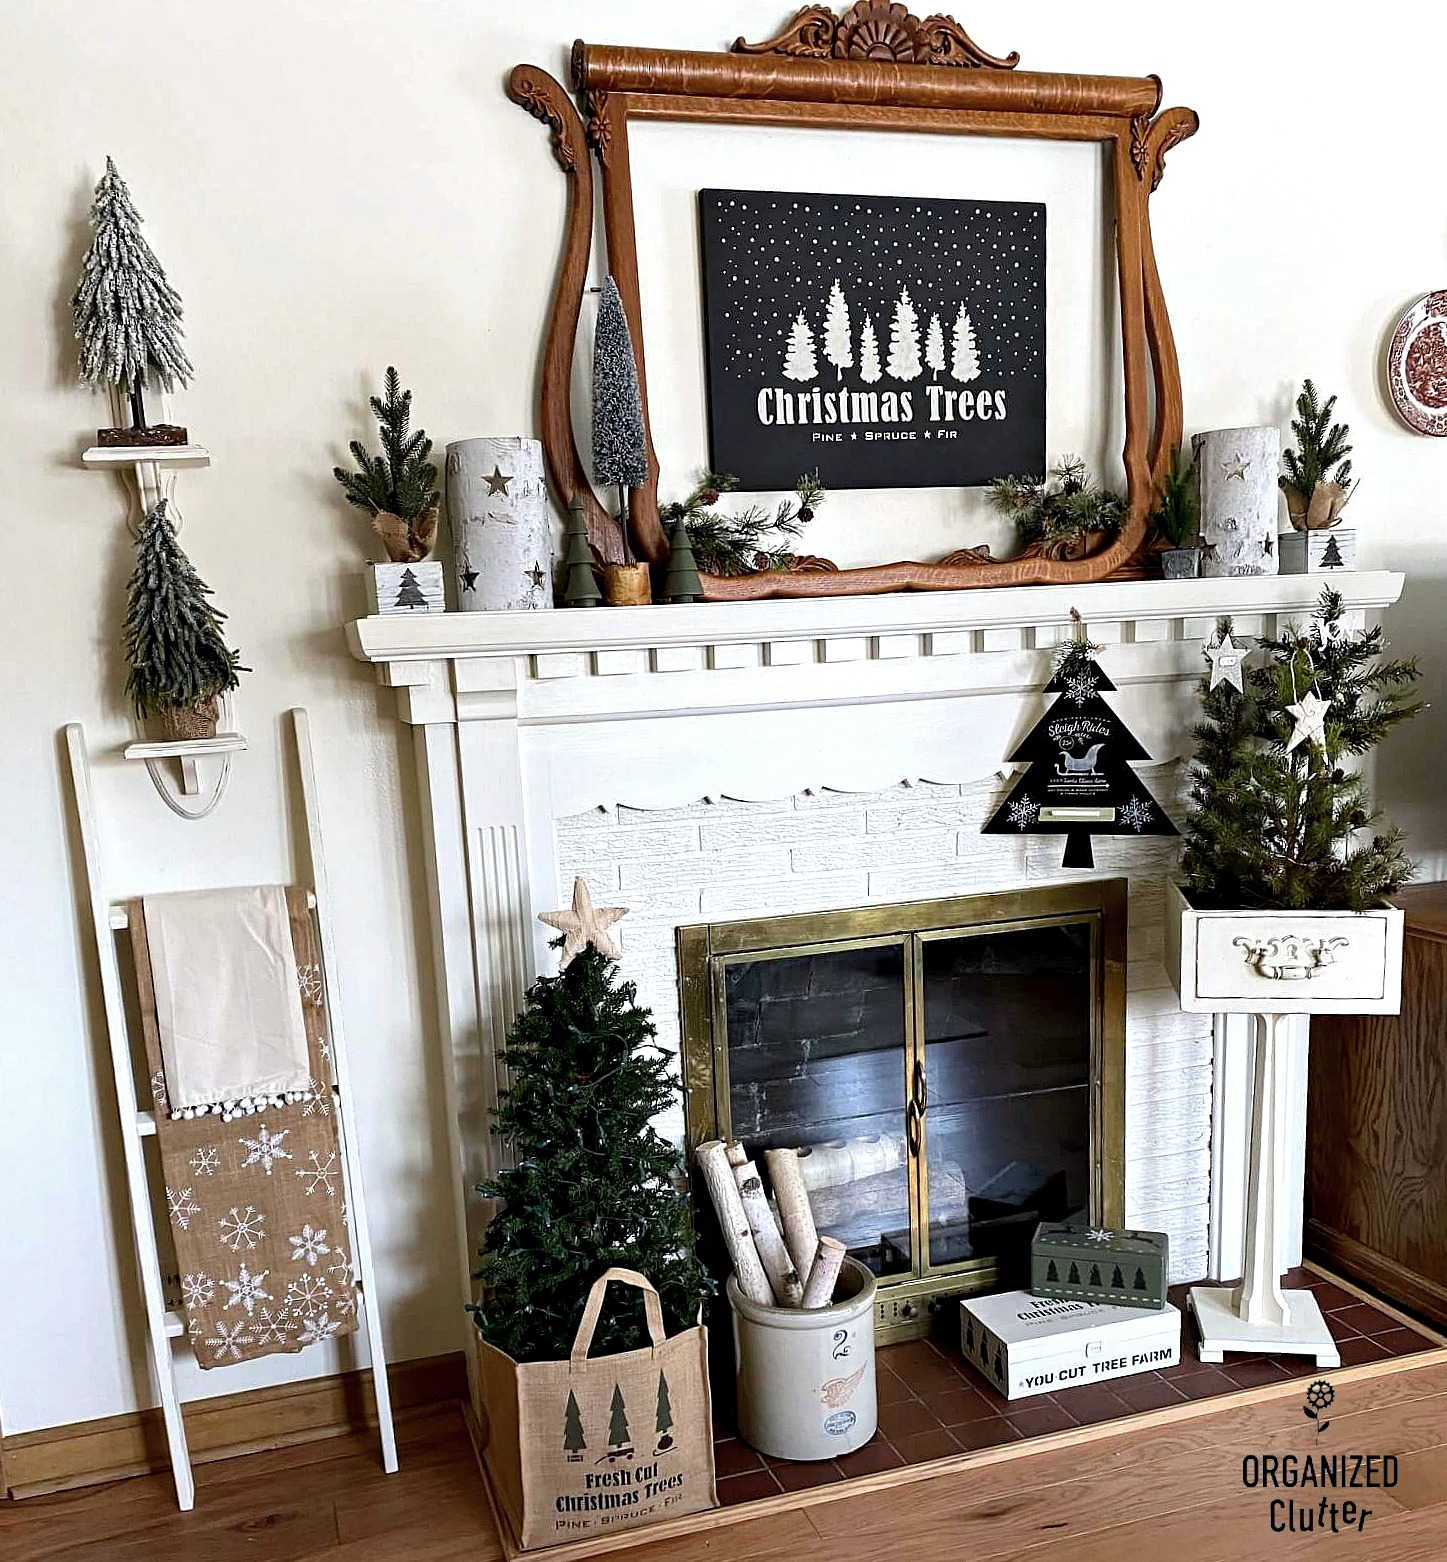 Neutral Christmas fireplace mantel with signs decor by Organized Clutter, featured on DIY Salvaged Junk Projects 558 on Funky Junk!